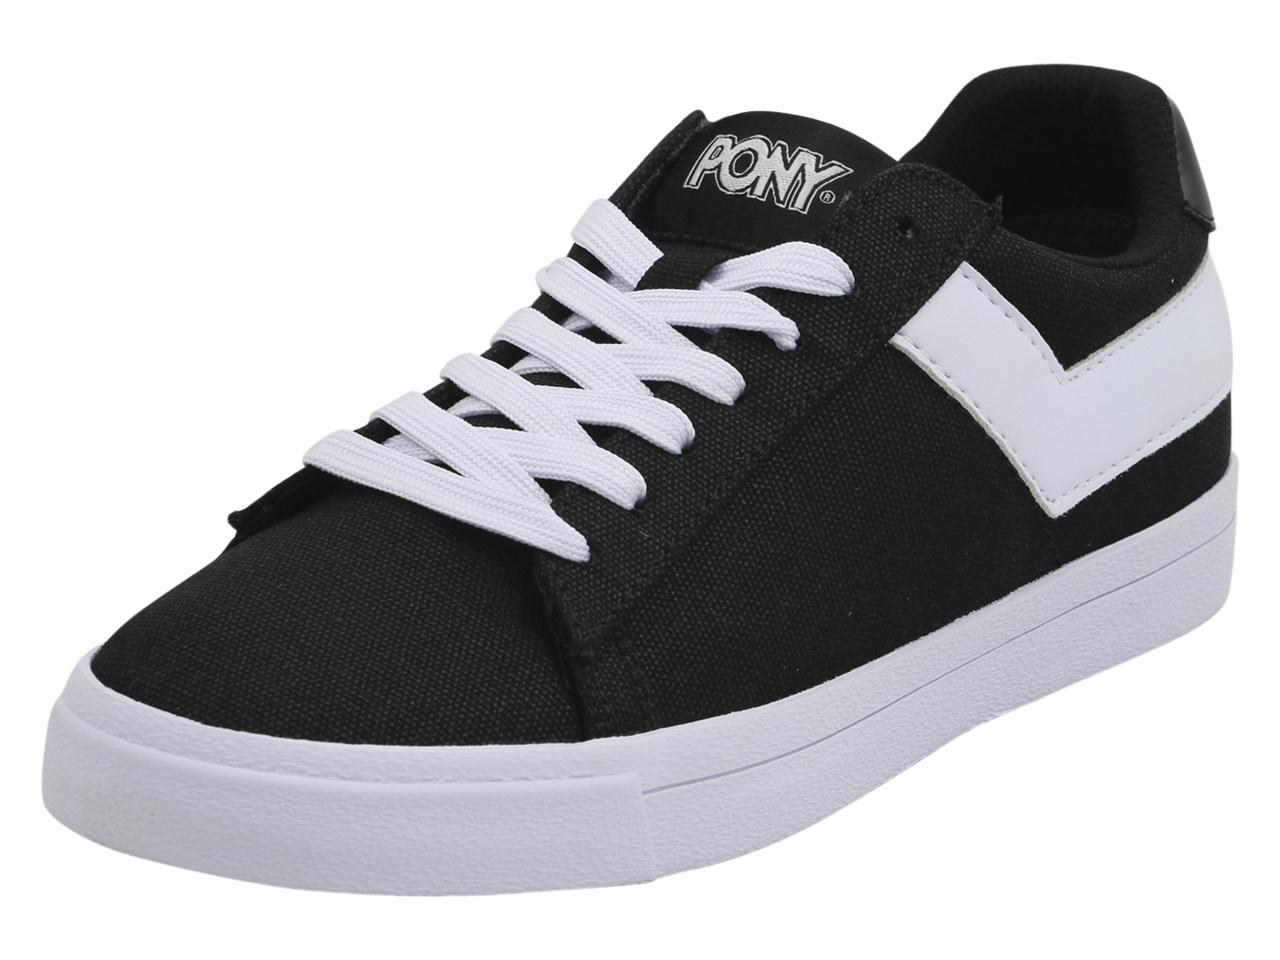 Image of Pony Women's Top Star Lo Core Canvas Sneakers Shoes - Black - 6 B(M) US